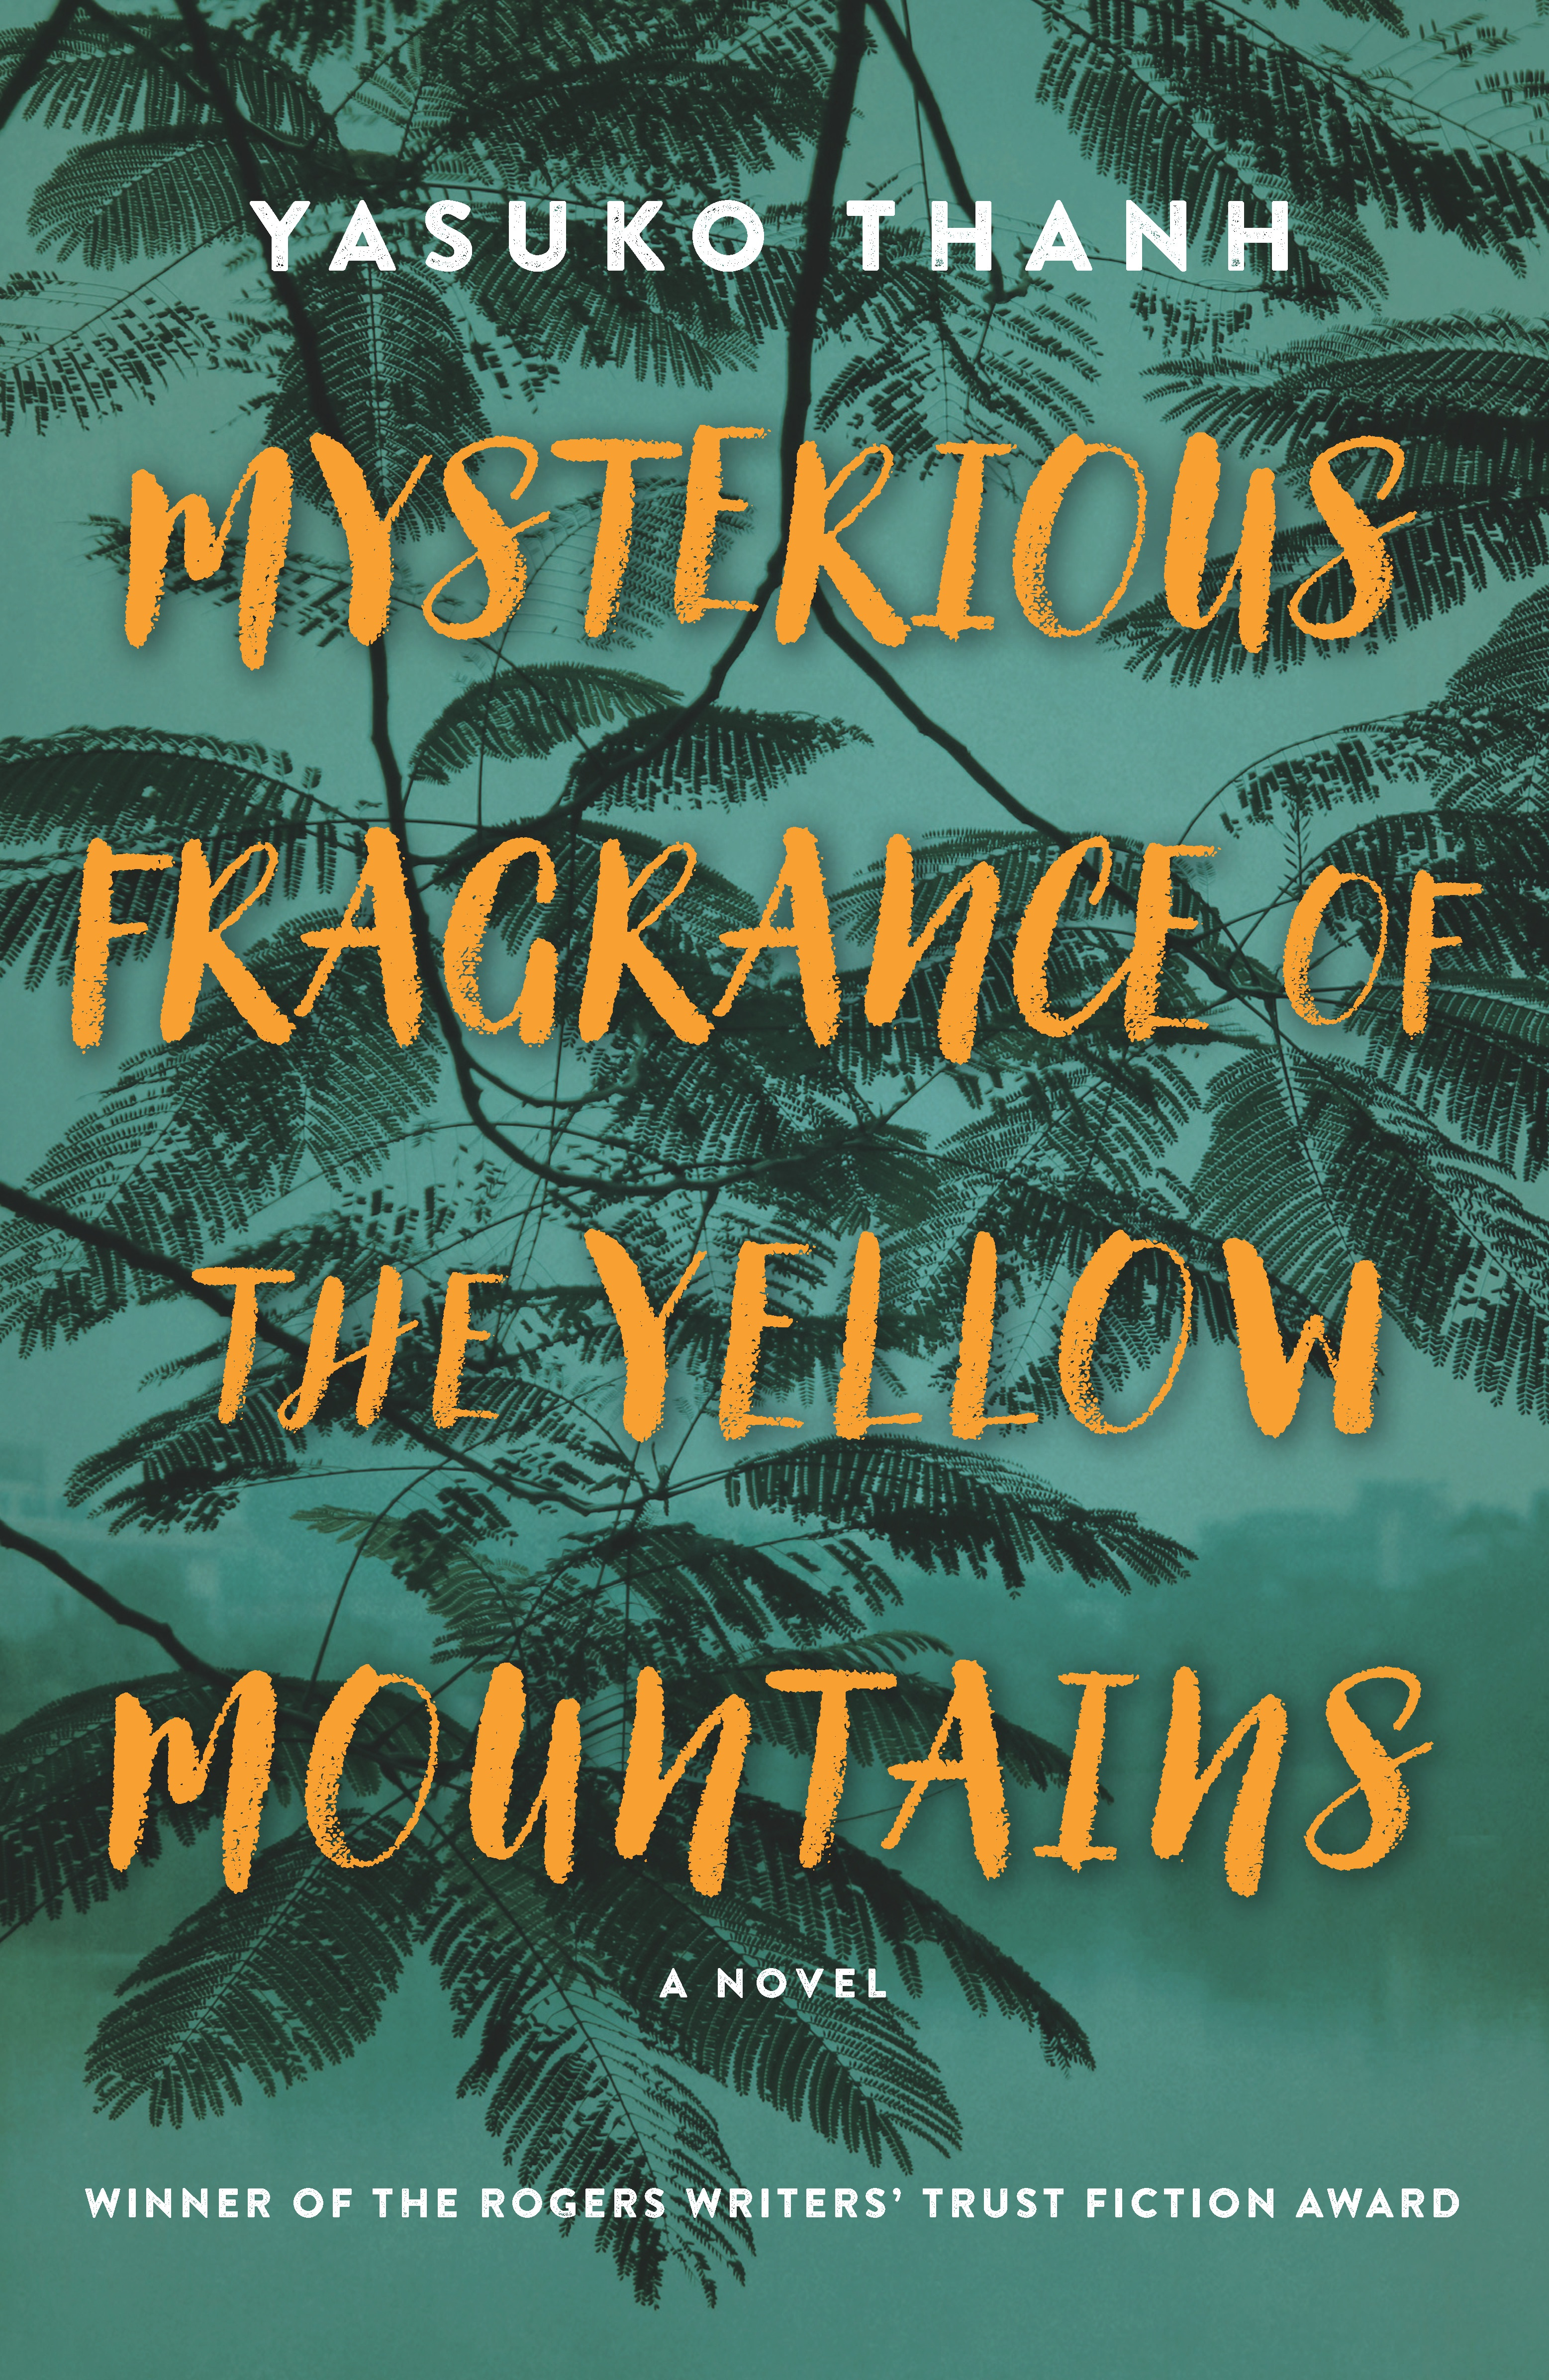 Mysterious Fragrance of the Yellow Mountains subsequent Canadian edition